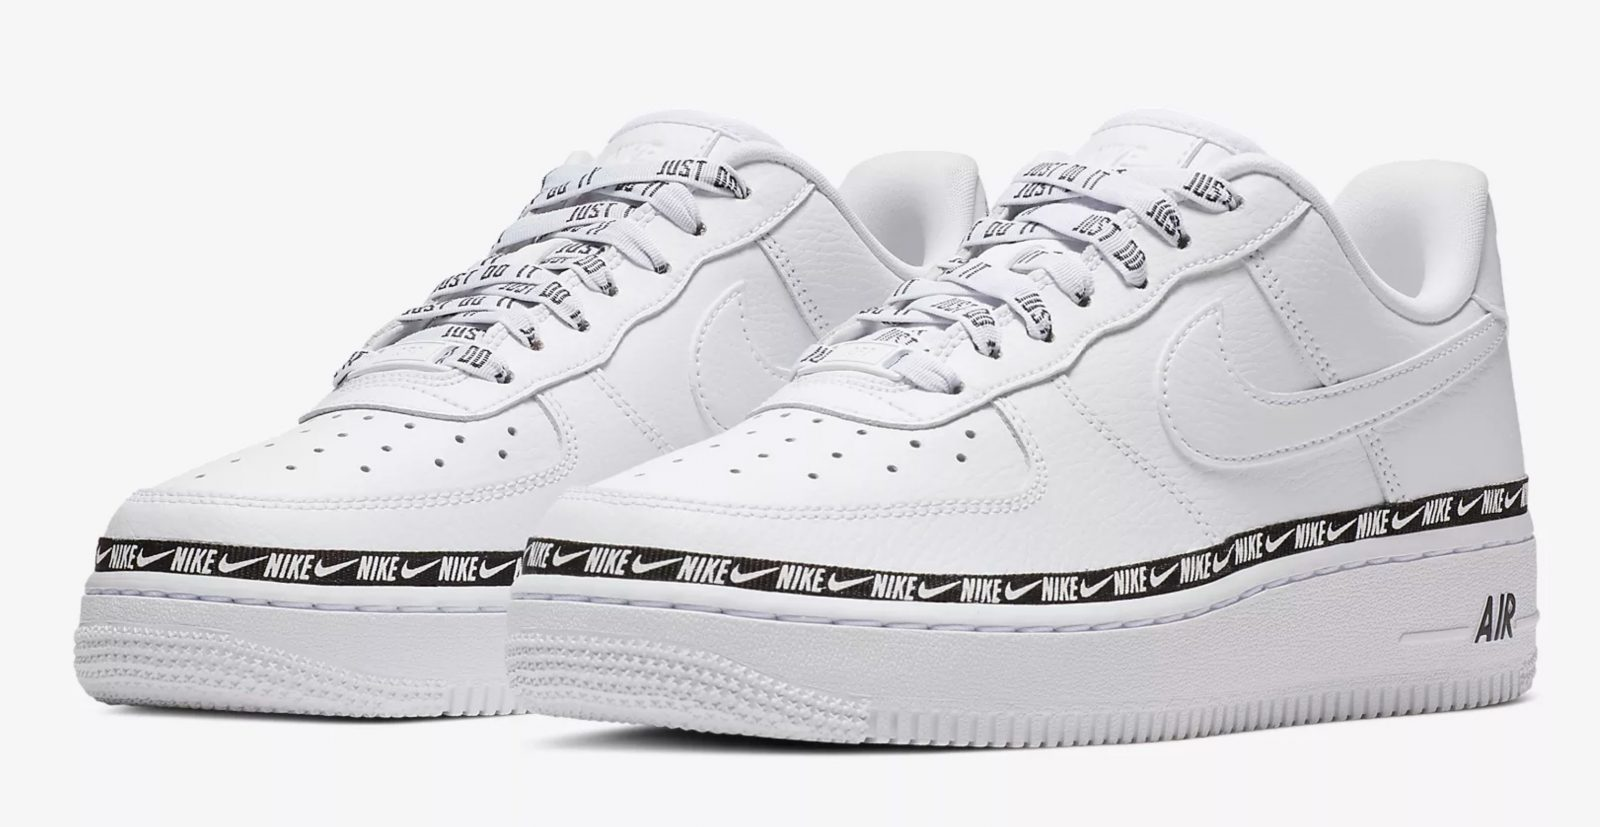 Nike Air Force 1 '07 SE Premium Ribbon Pack AH6827 101Eneste kvinder AH6827 101 The Sole Womens